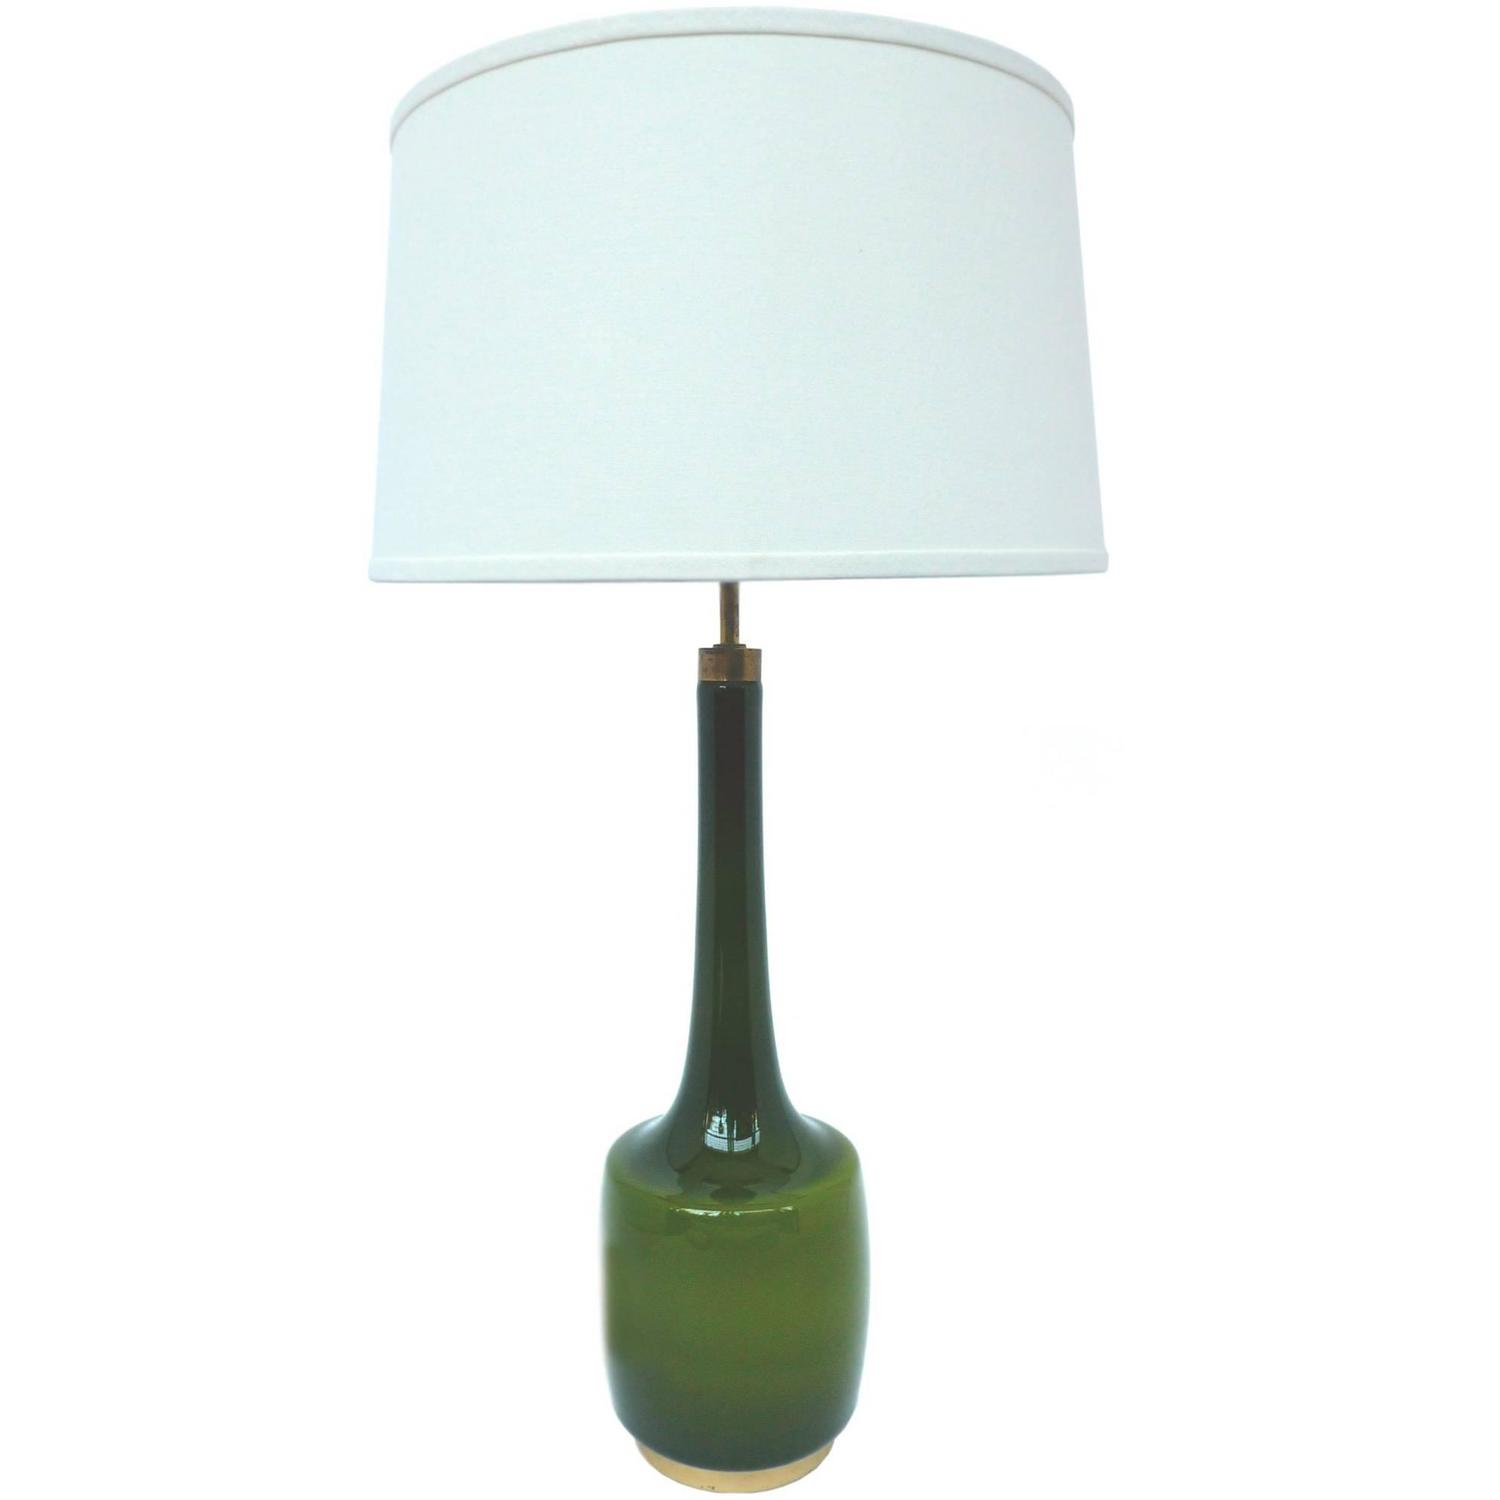 1960s green glass table lamp by kastrup holmegaard at 1stdibs aloadofball